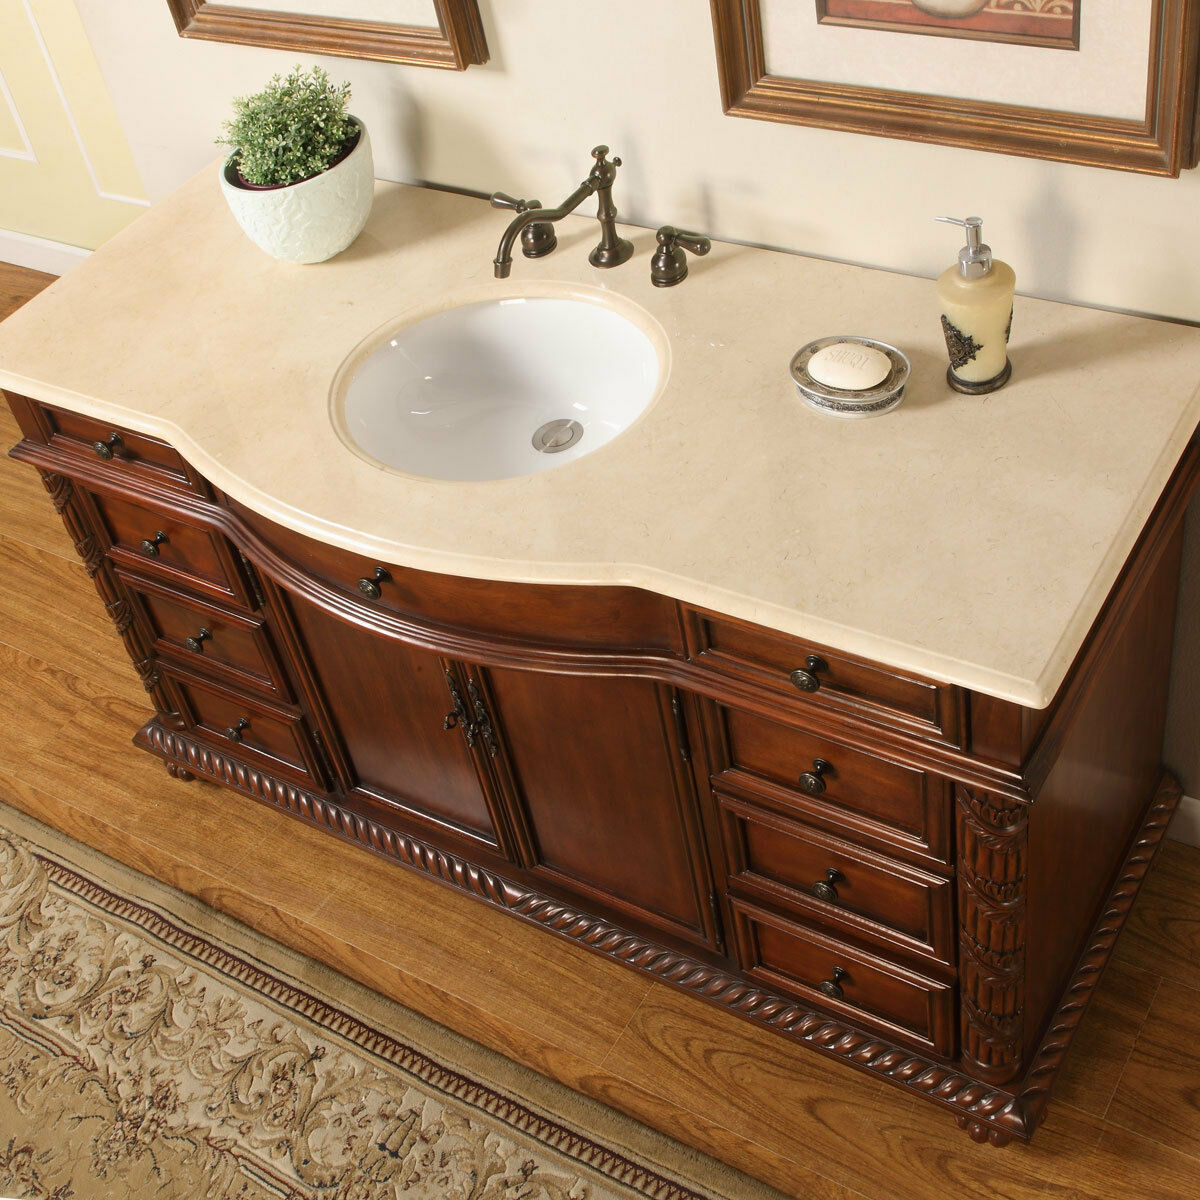 60 Inch Lavatory Single Sink Bathroom Vanity Marble Stone Top Cabinet 0268CM